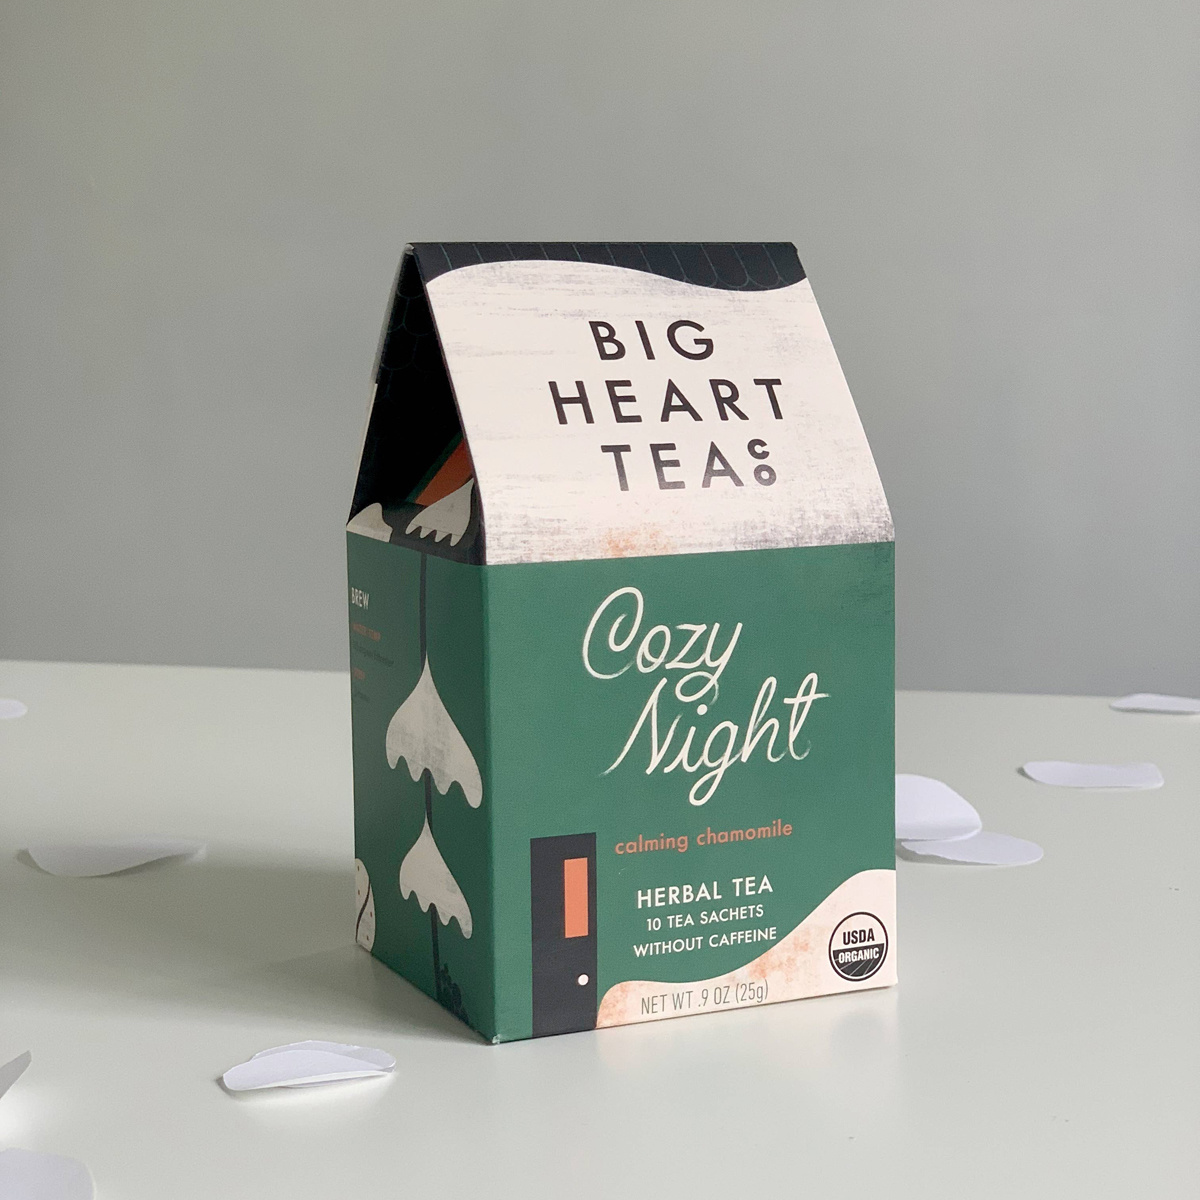 Big Heart Tea - BHT Cozy Night Organic Chamomile Tea